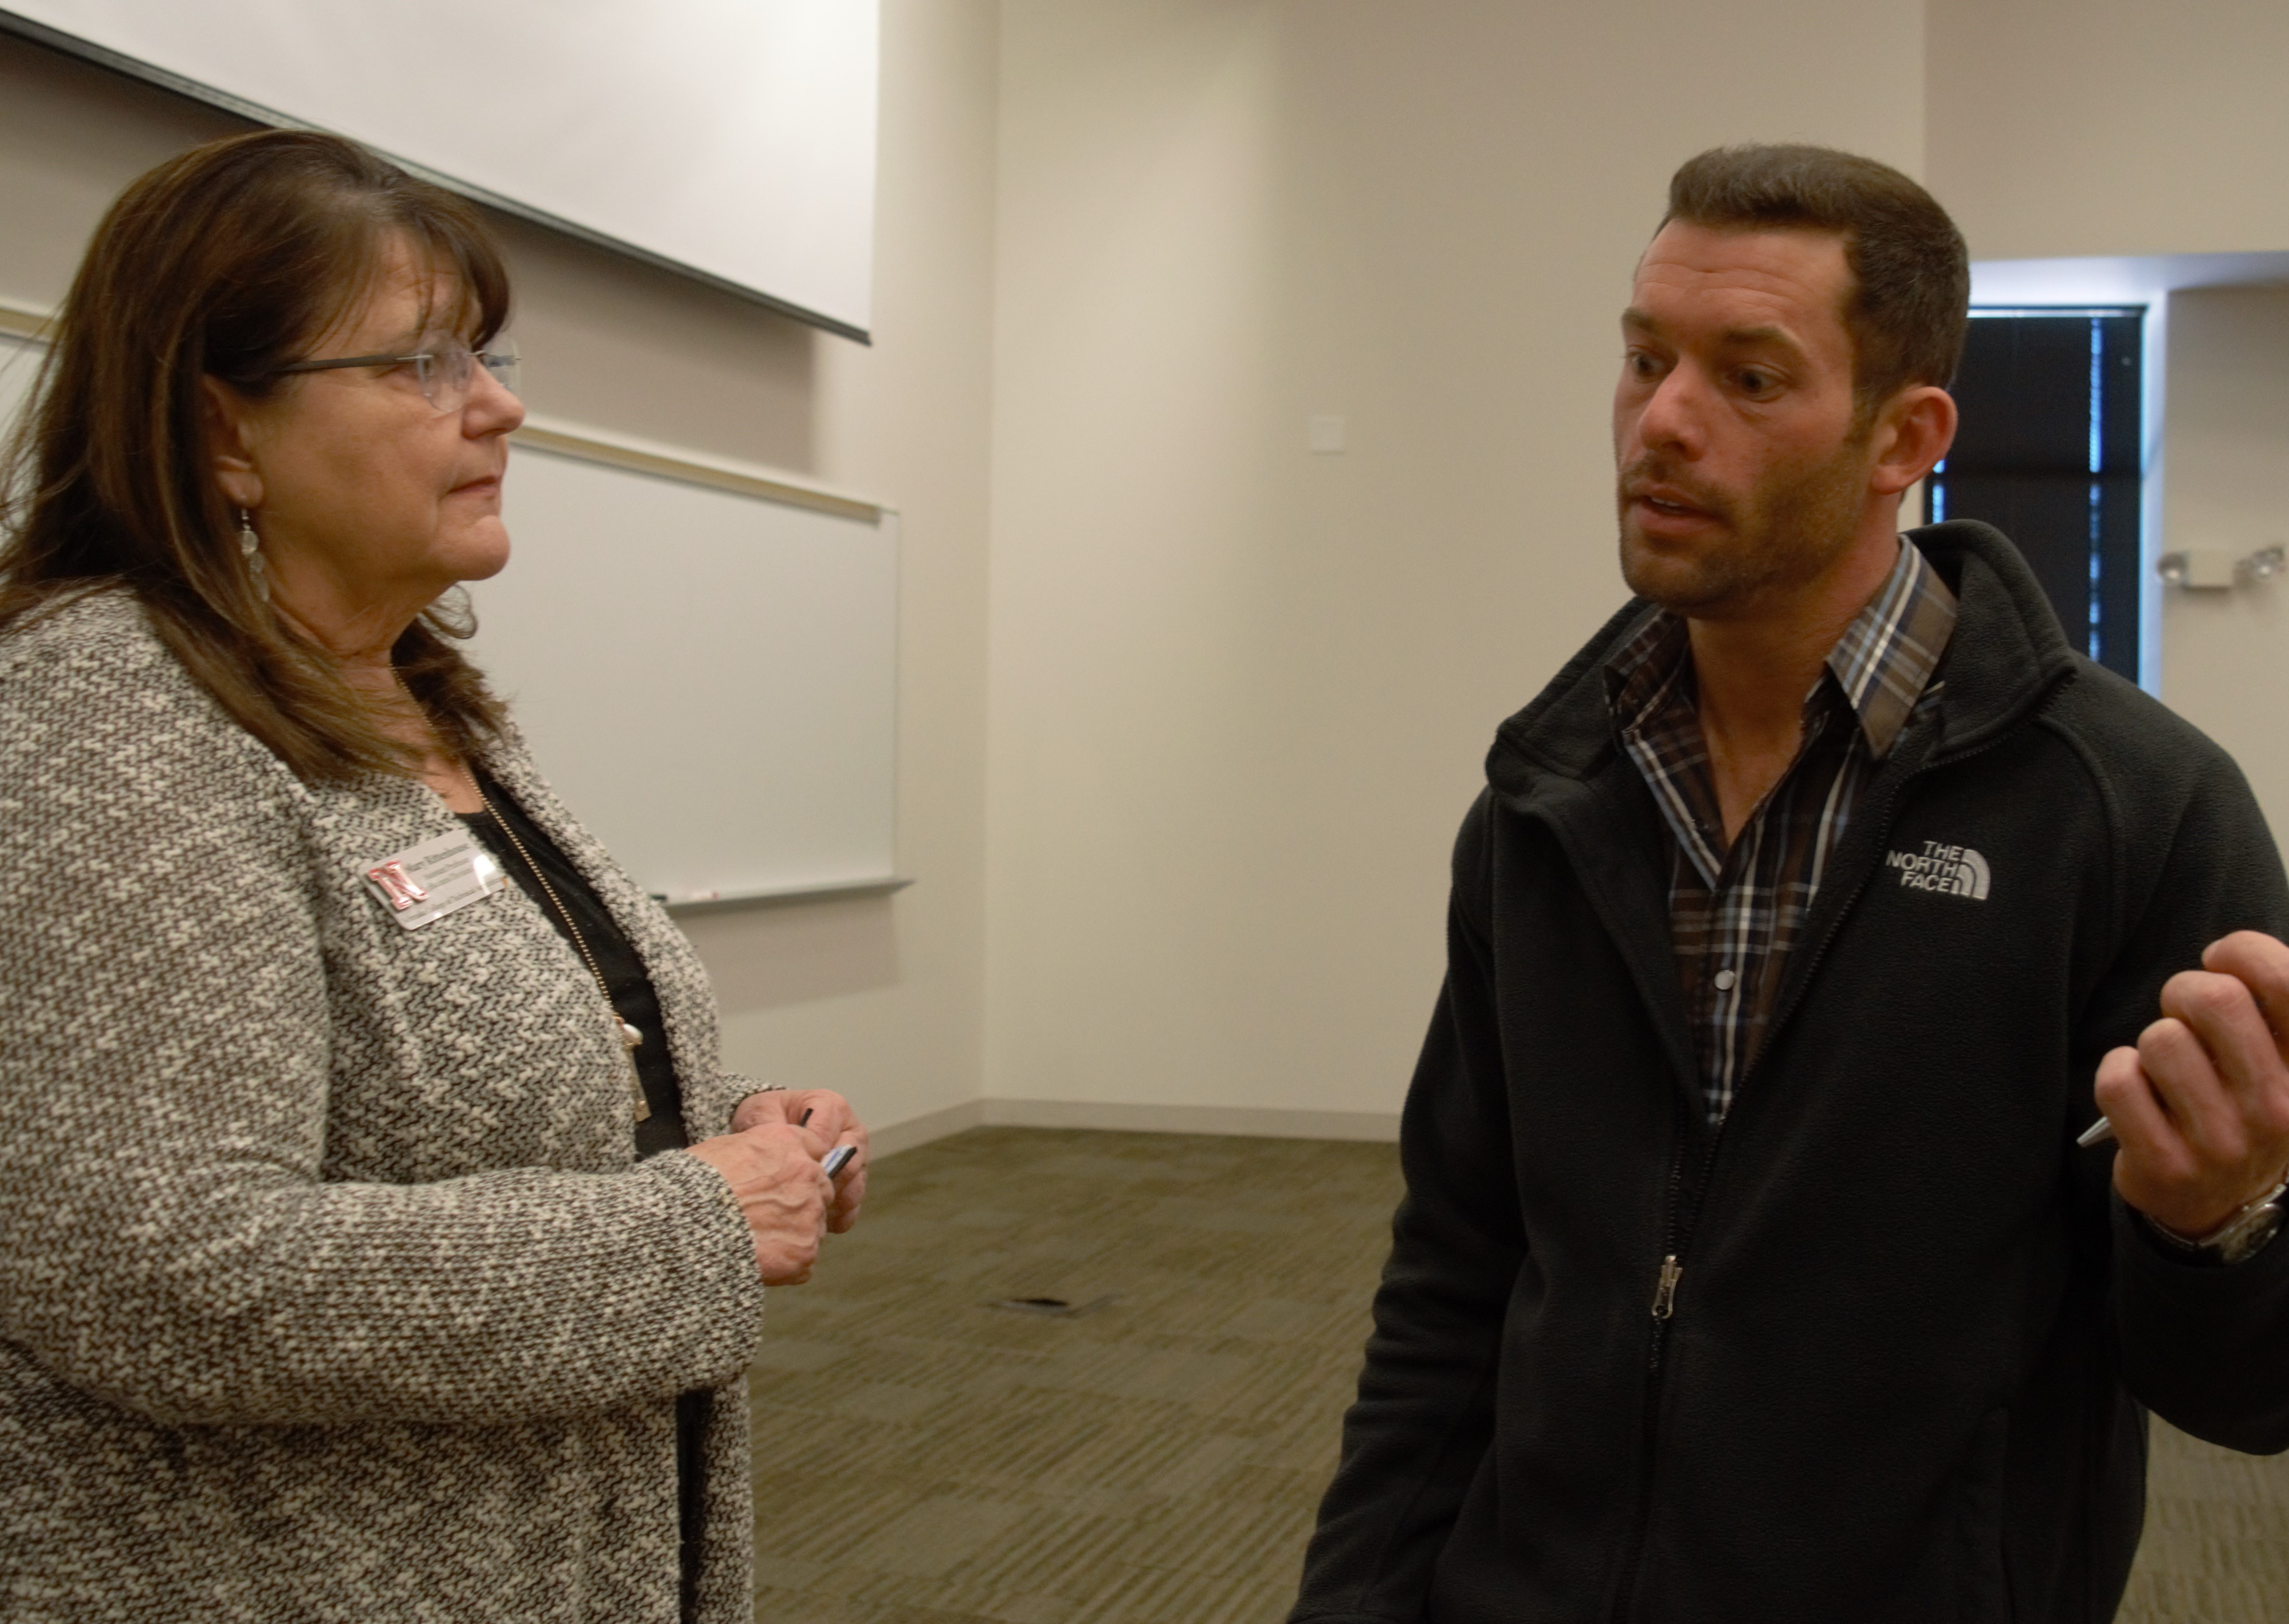 Wade Shipman discusses an agricultural finance seminar with Mary Rittenhouse, division chair of NCTA Agribusiness Management Systems. (Crawford, NCTA News)